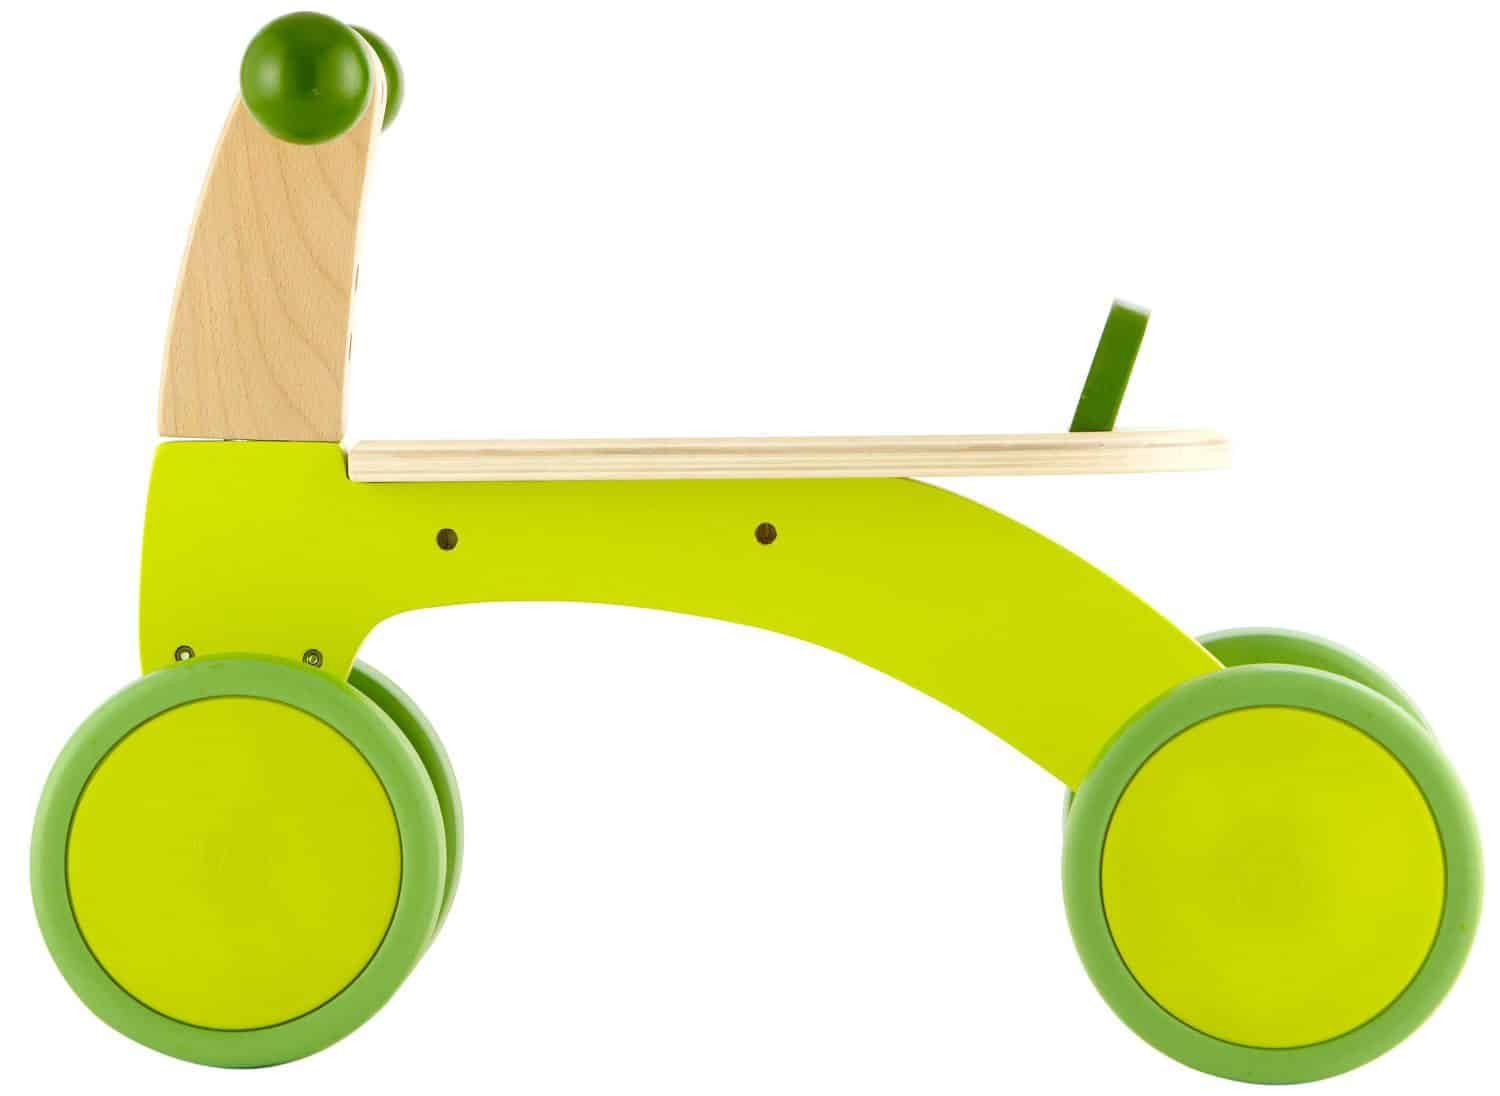 Toys car and bike   STARTER WOODEN RIDEON TOYS FOR TODDLERS  Kids toys  Pinterest